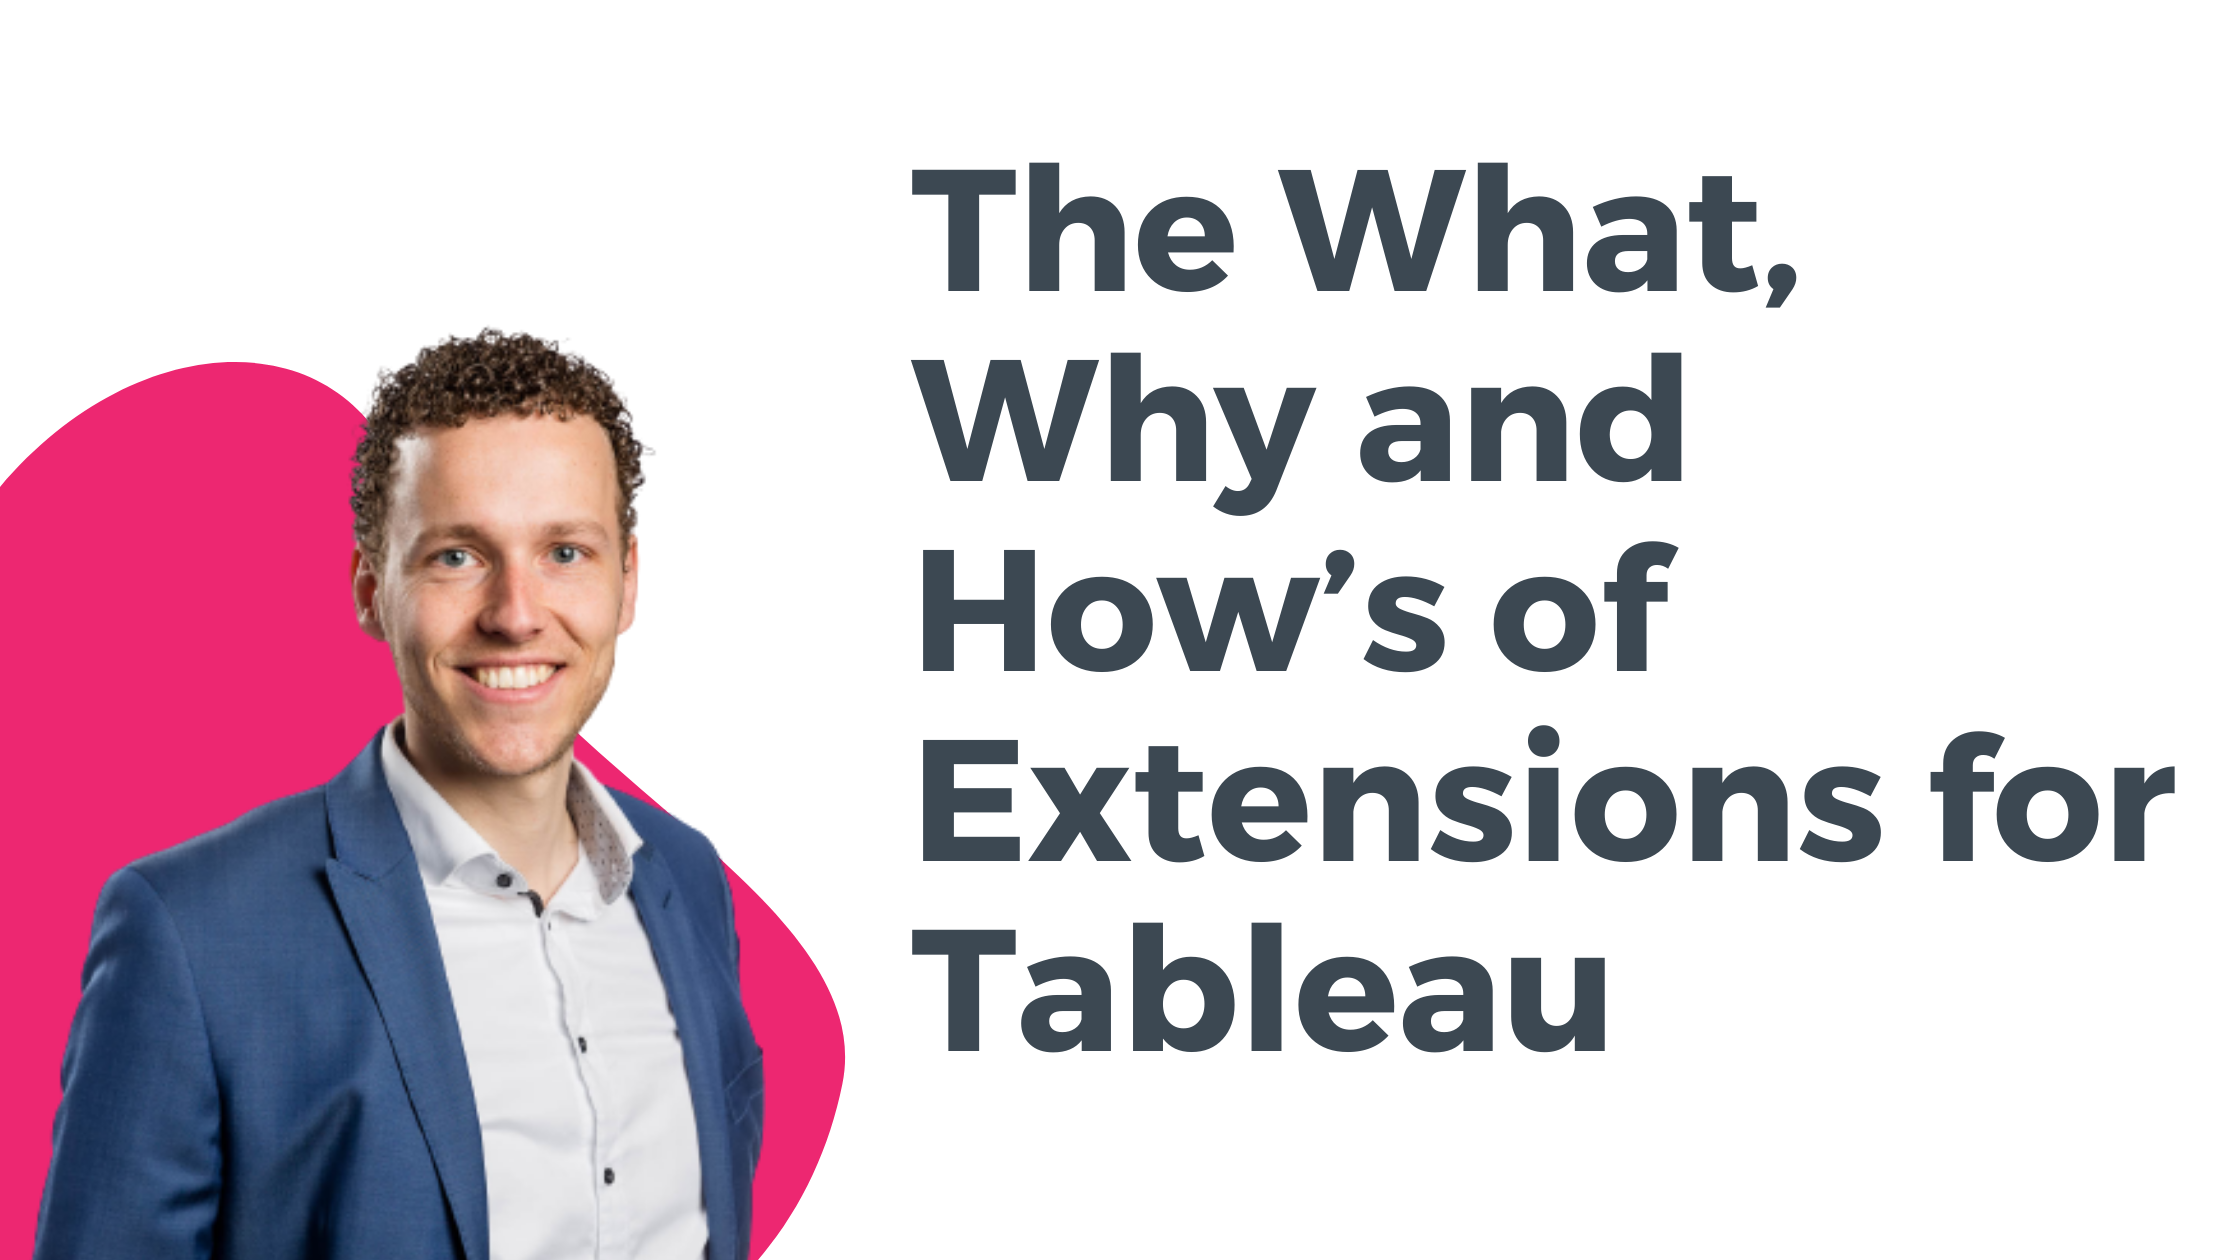 Extensions for Tableau